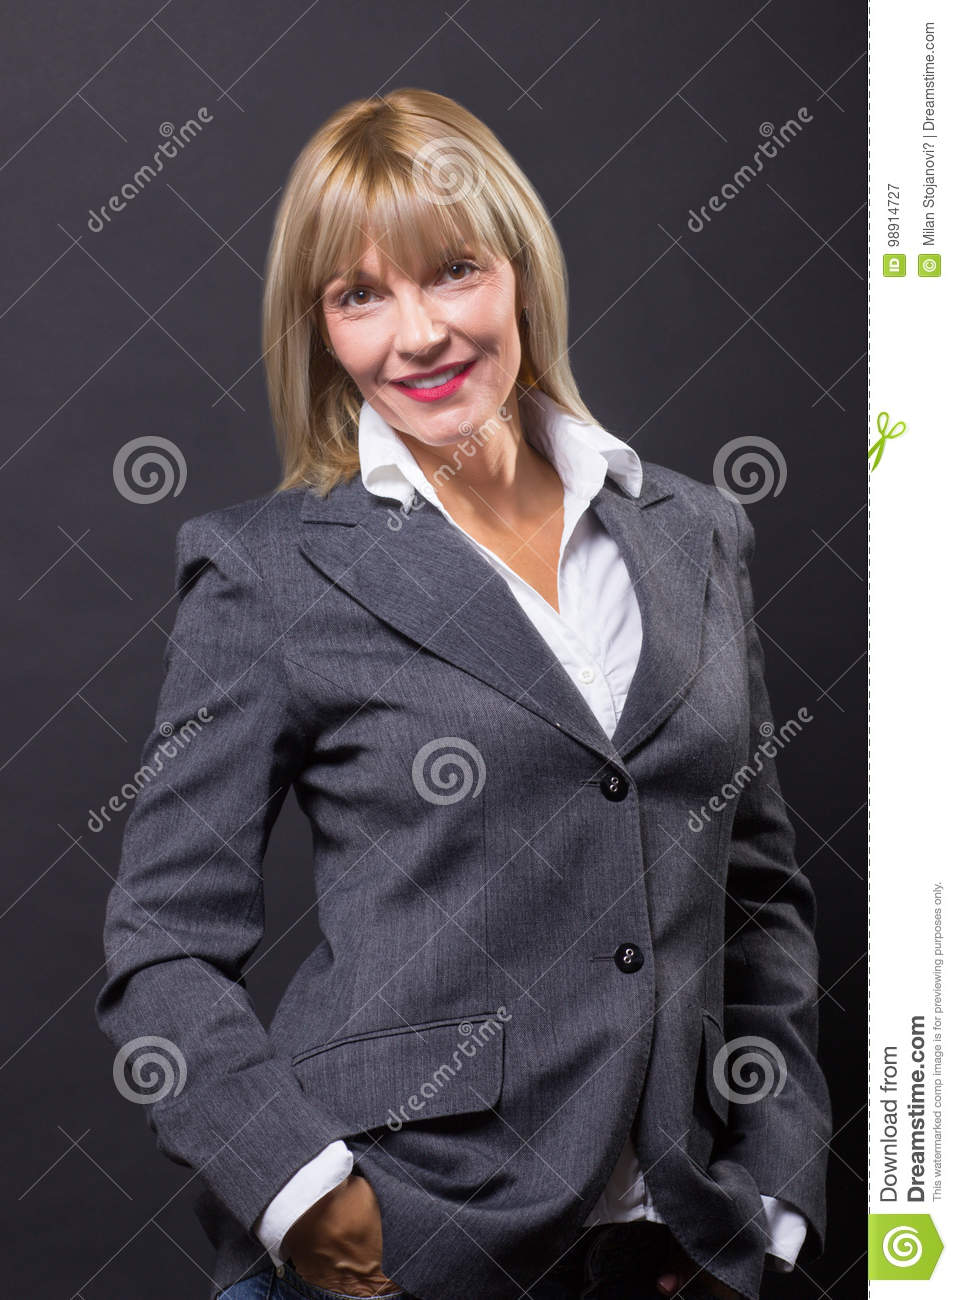 Mature woman 40s years beautiful suit smiling